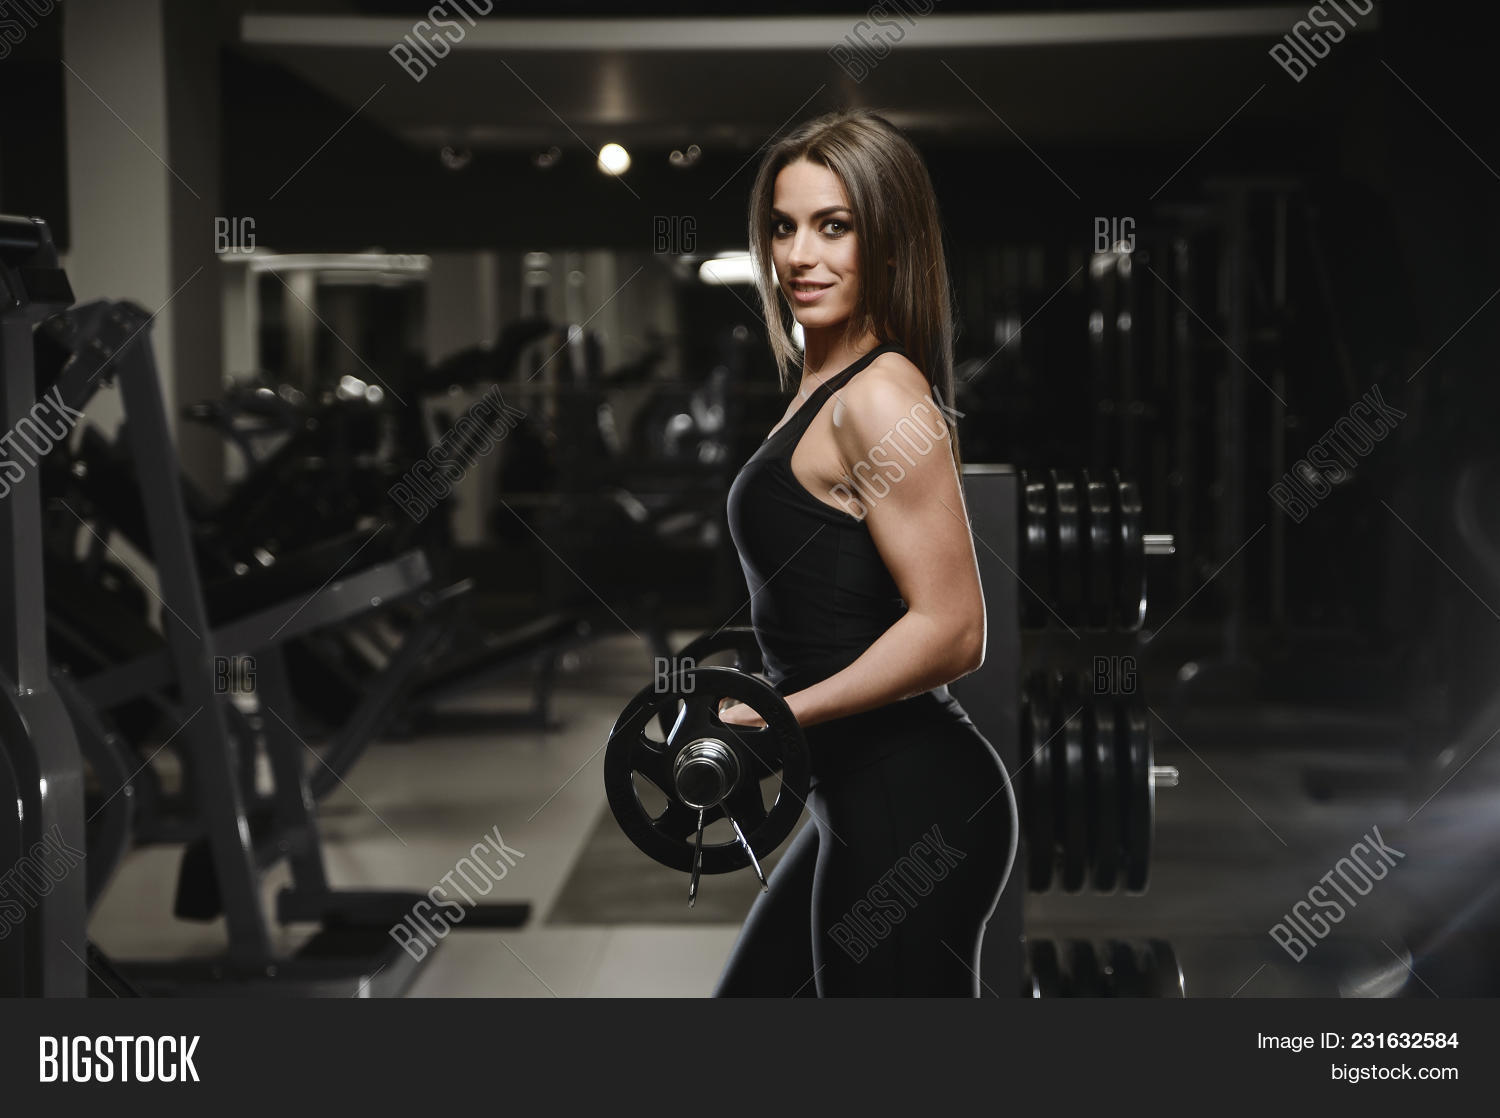 strong-athletic-girls-sexy